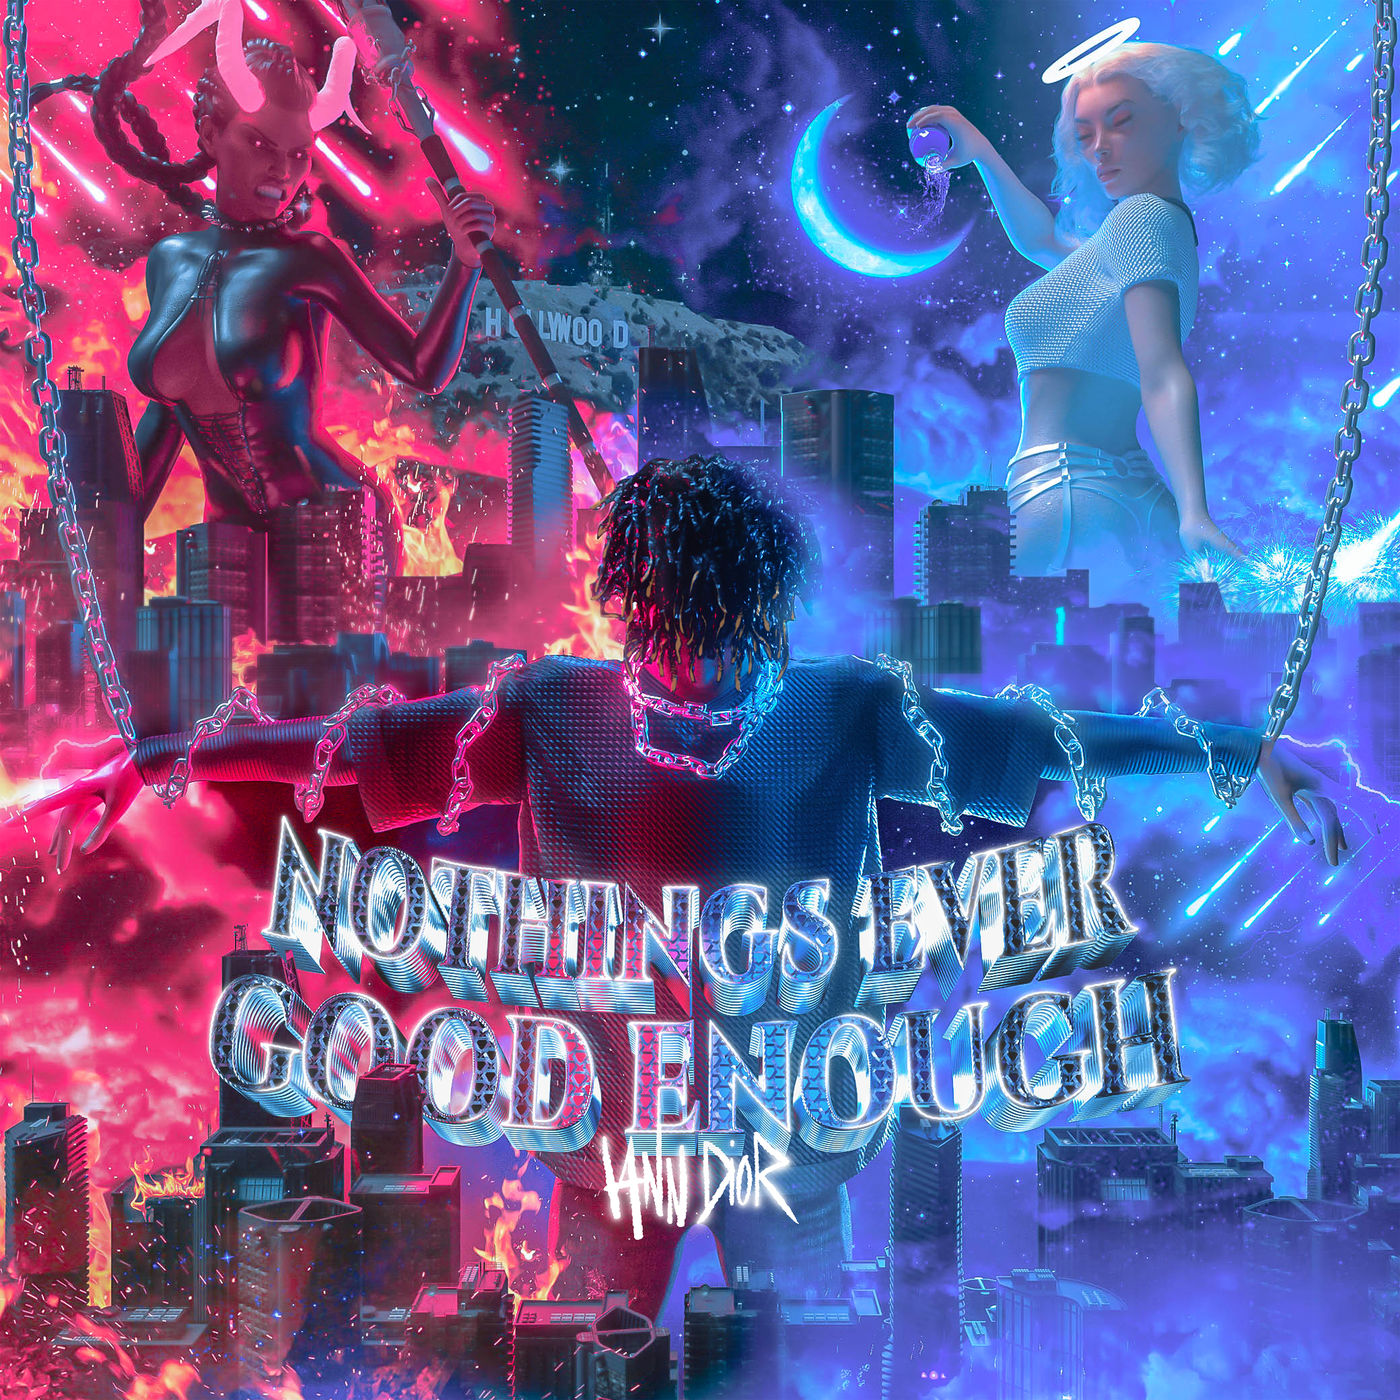 Cover iann dior - nothings ever good enough (Explicit)